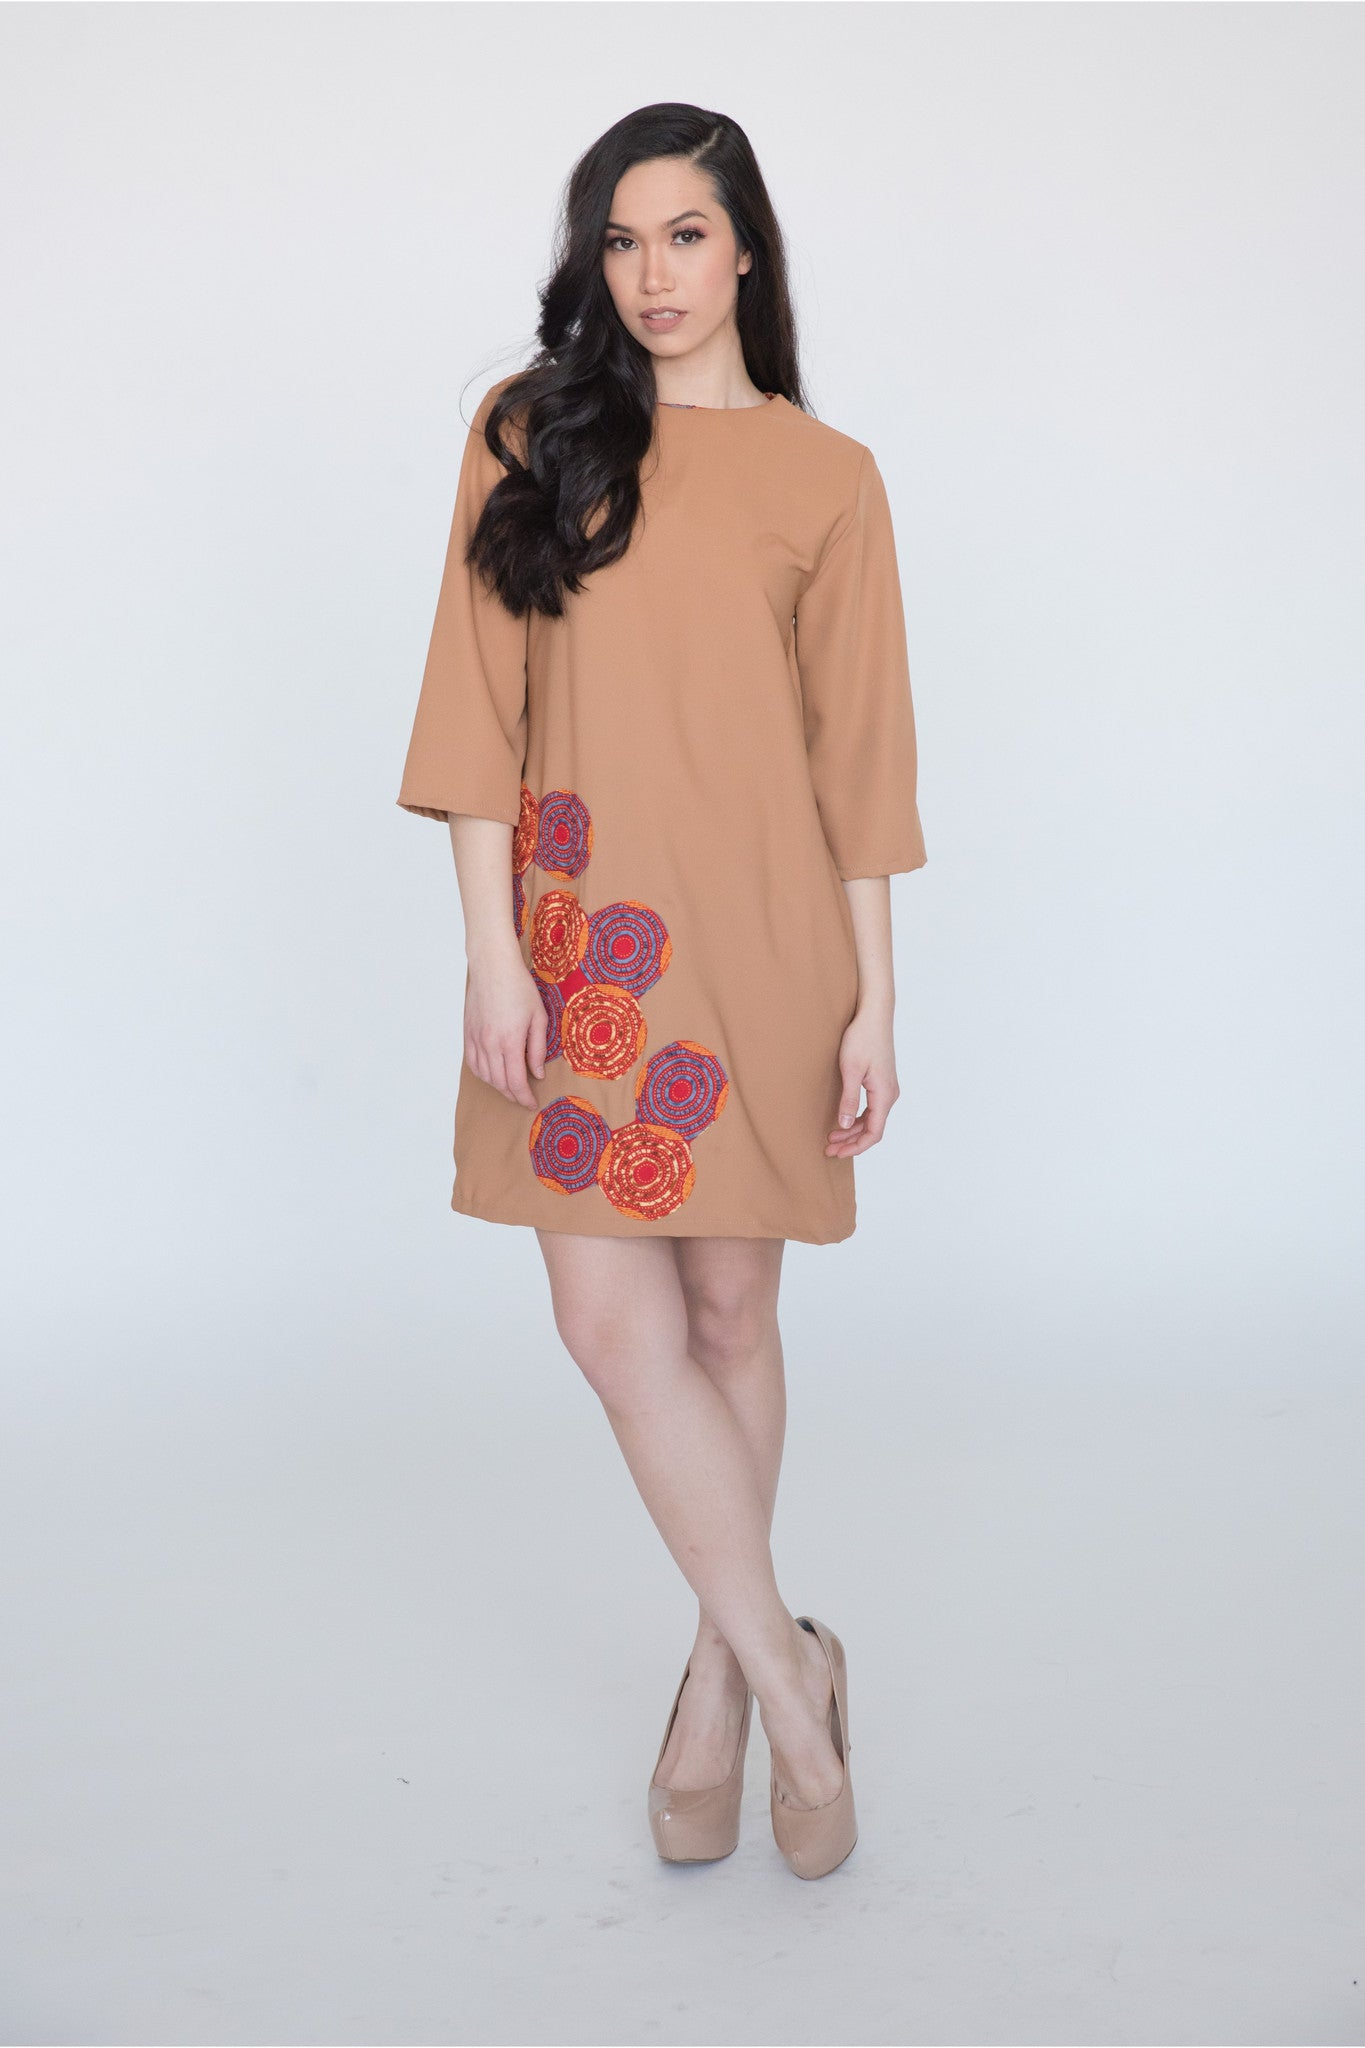 Ninies resal dress front